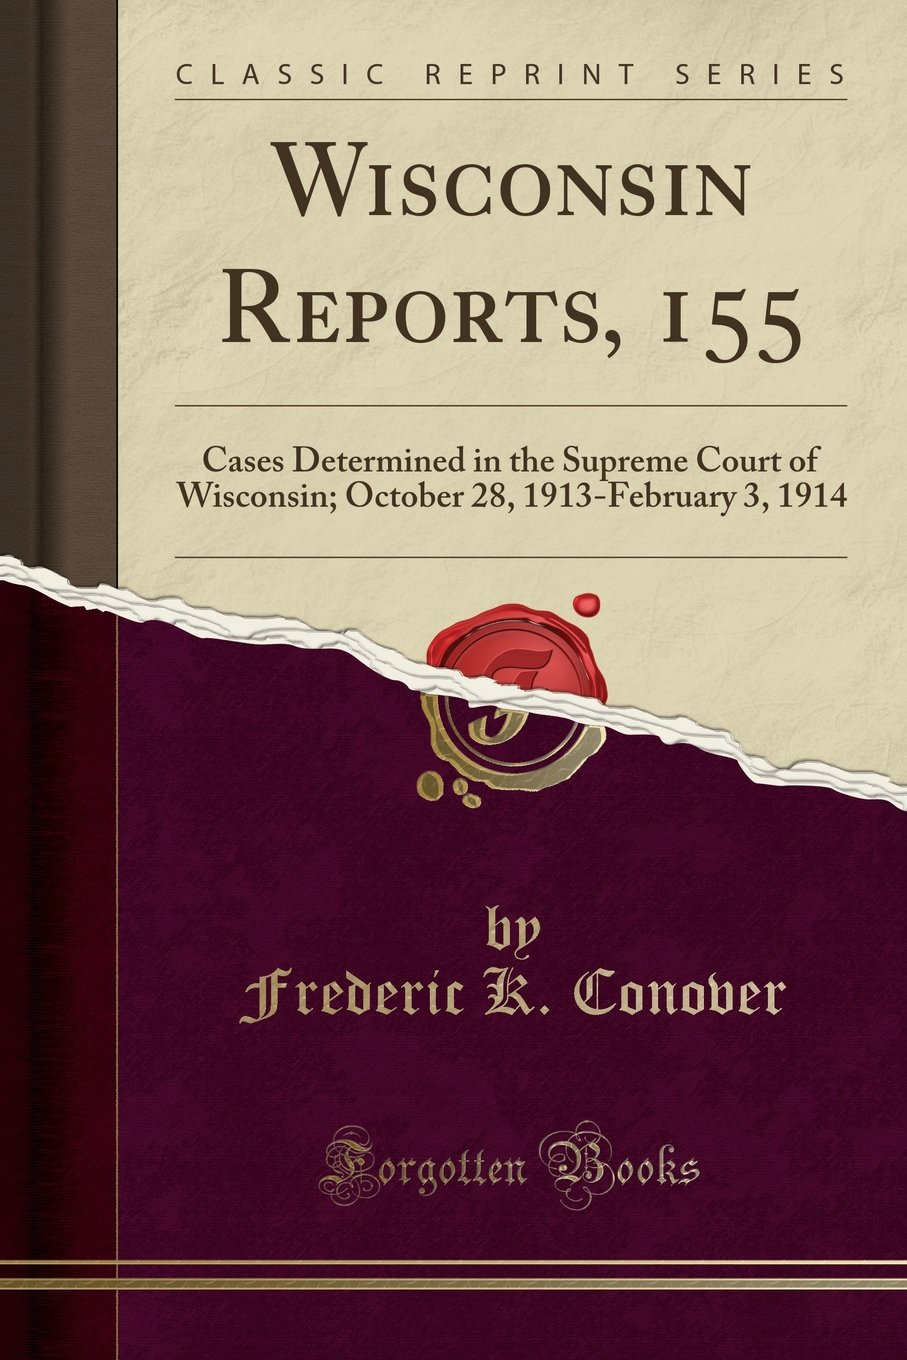 Wisconsin Reports, 155: Cases Determined in the Supreme Court of Wisconsin; October 28, 1913-February 3, 1914 (Classic Reprint) ebook